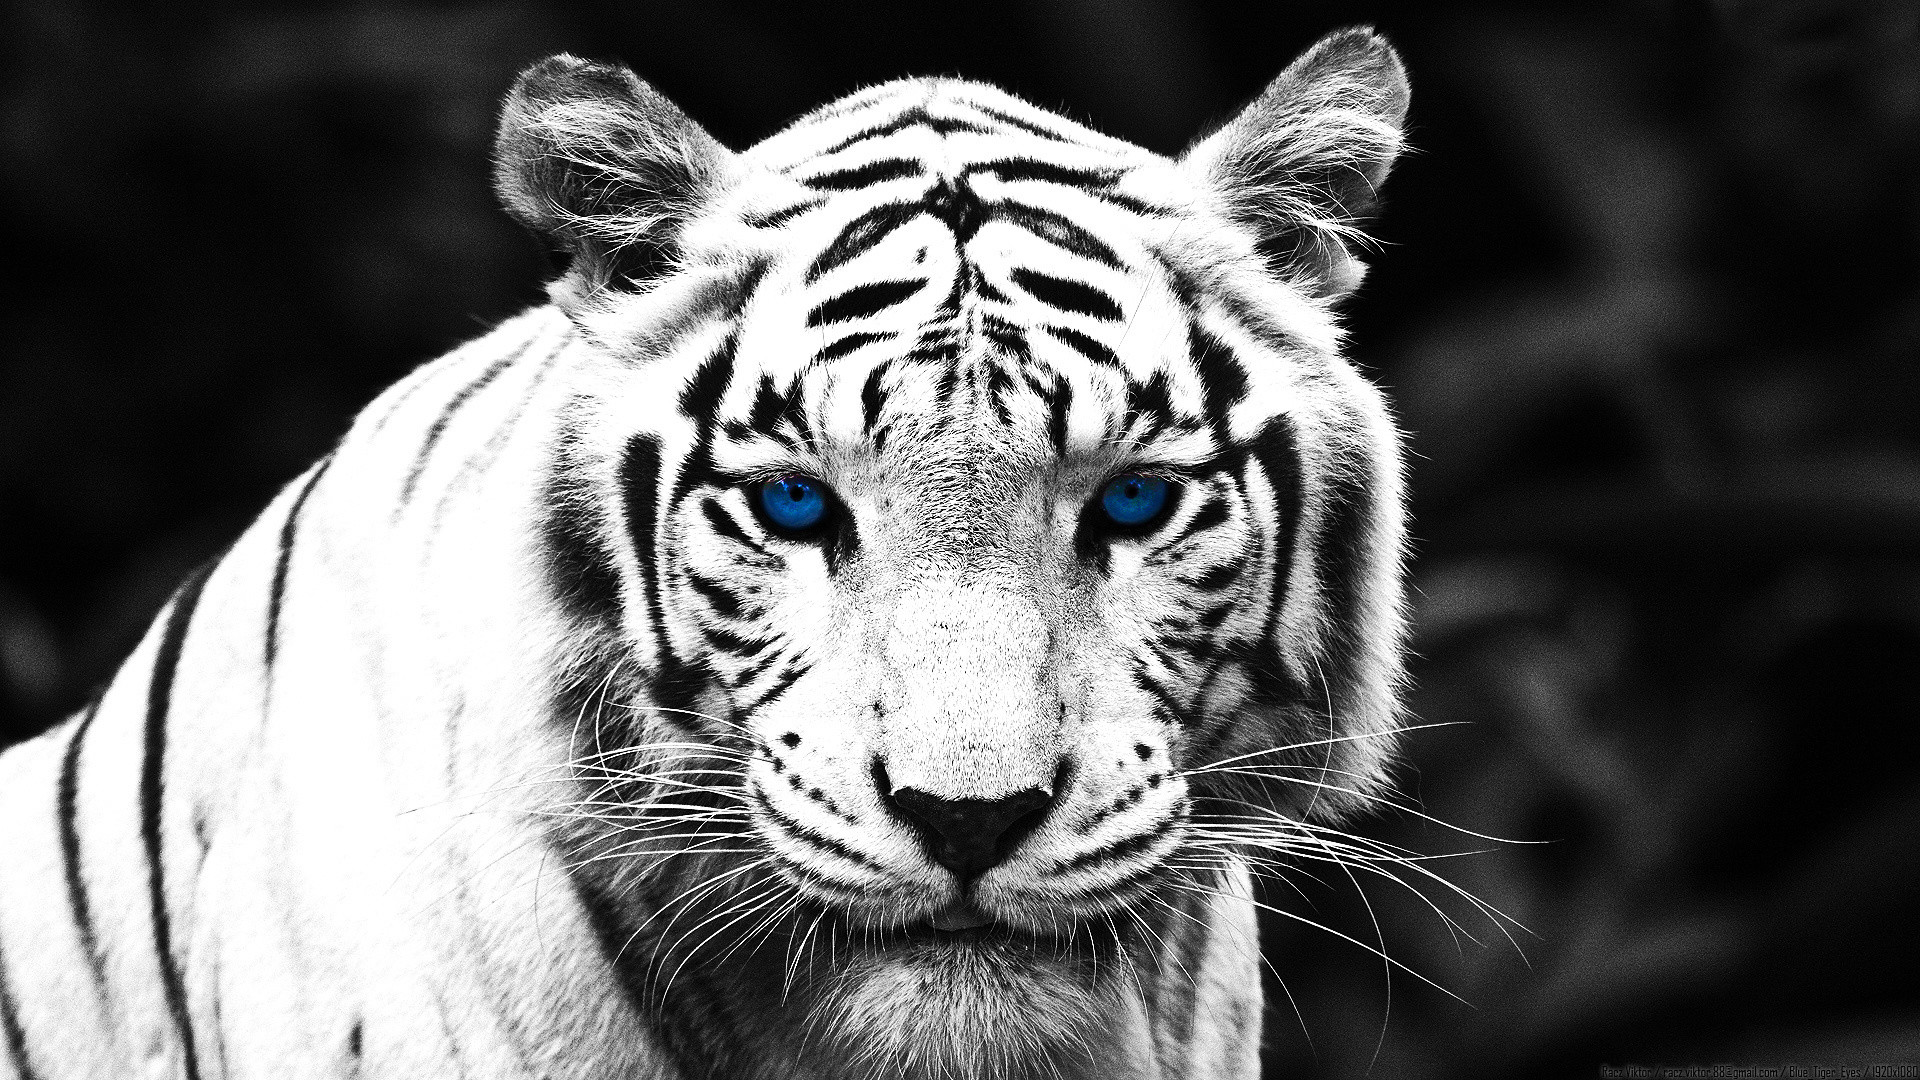 White Tiger Wallpaper Really good wallpapers!